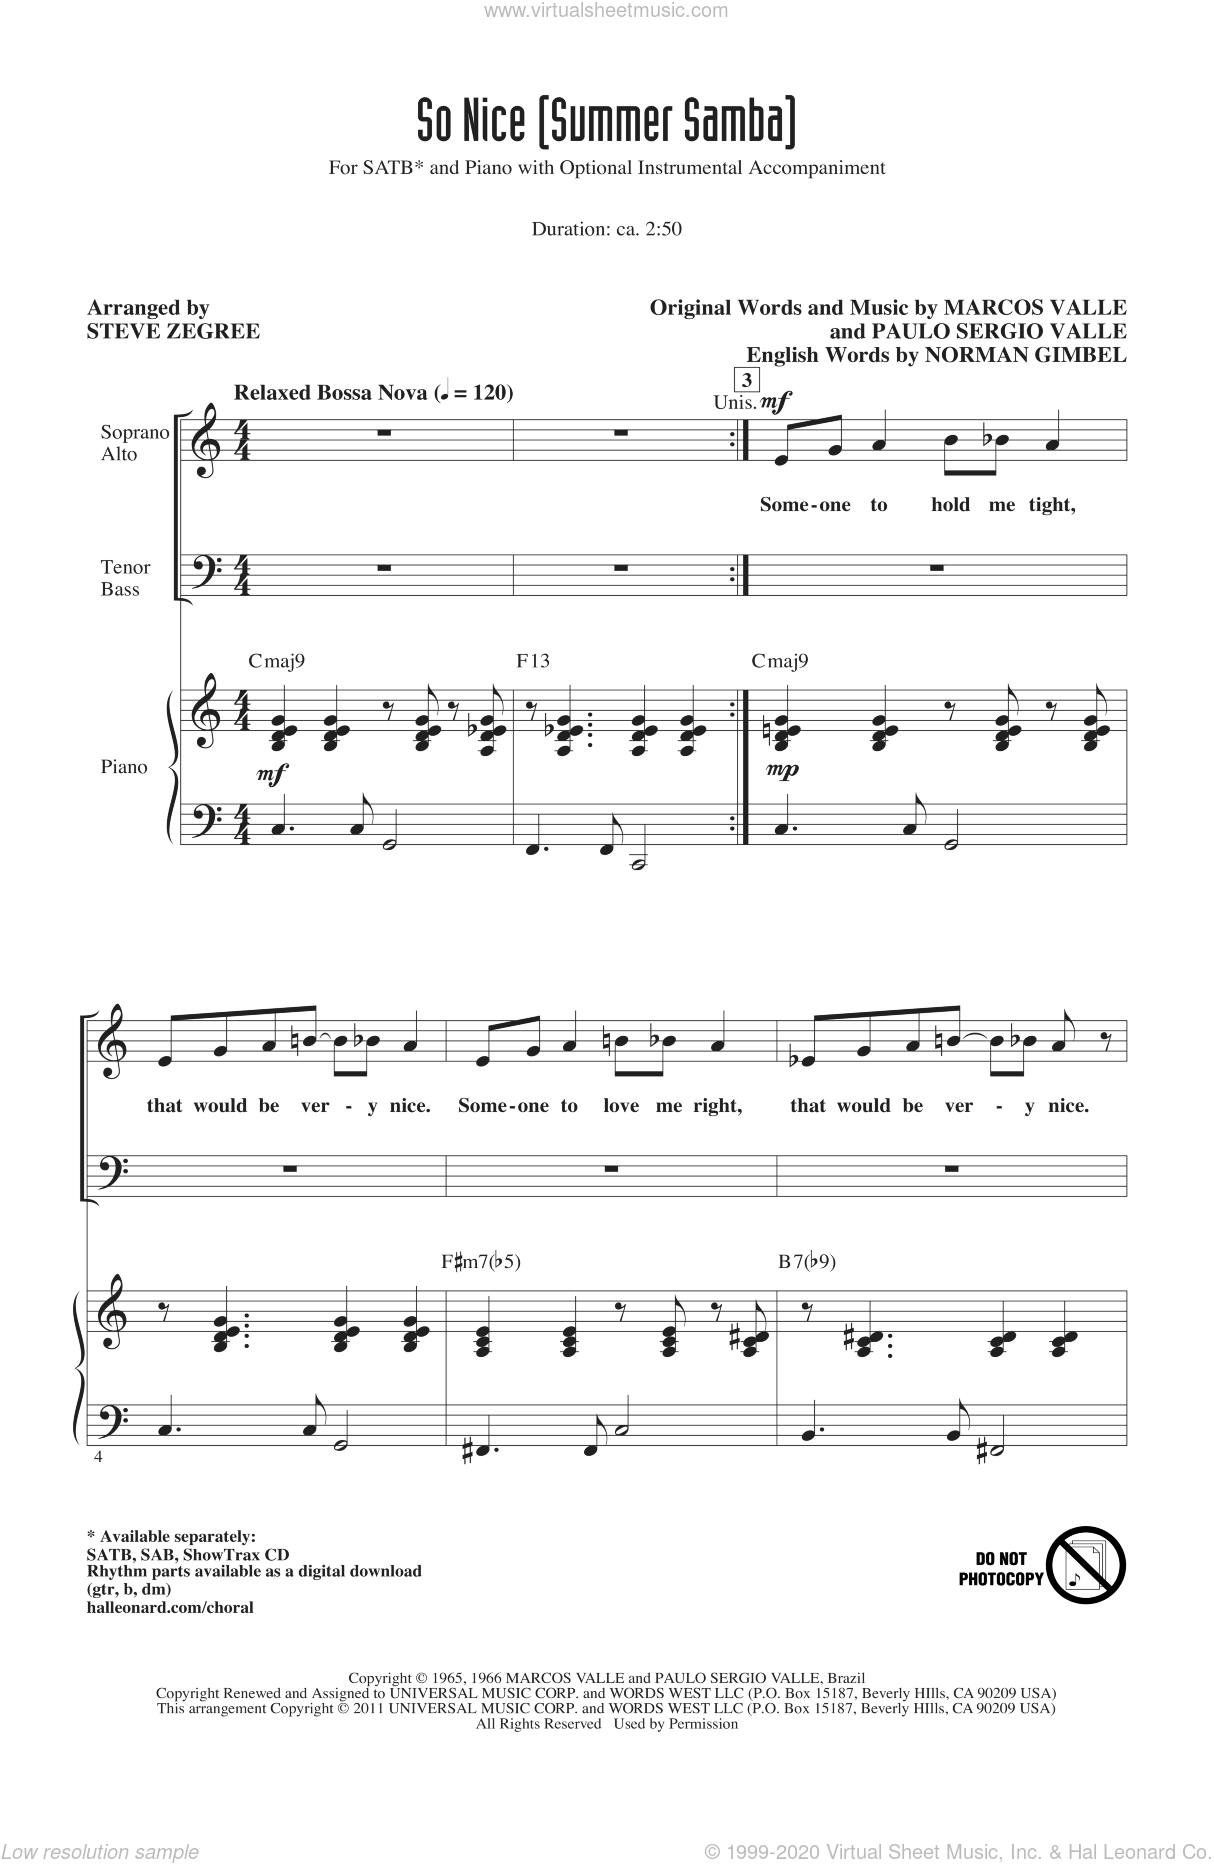 So Nice (Summer Samba) sheet music for choir (SATB: soprano, alto, tenor, bass) by Norman Gimbel, Marcos Valle, Paulo Sergio Valle, Walter Wanderley and Steve Zegree, intermediate skill level